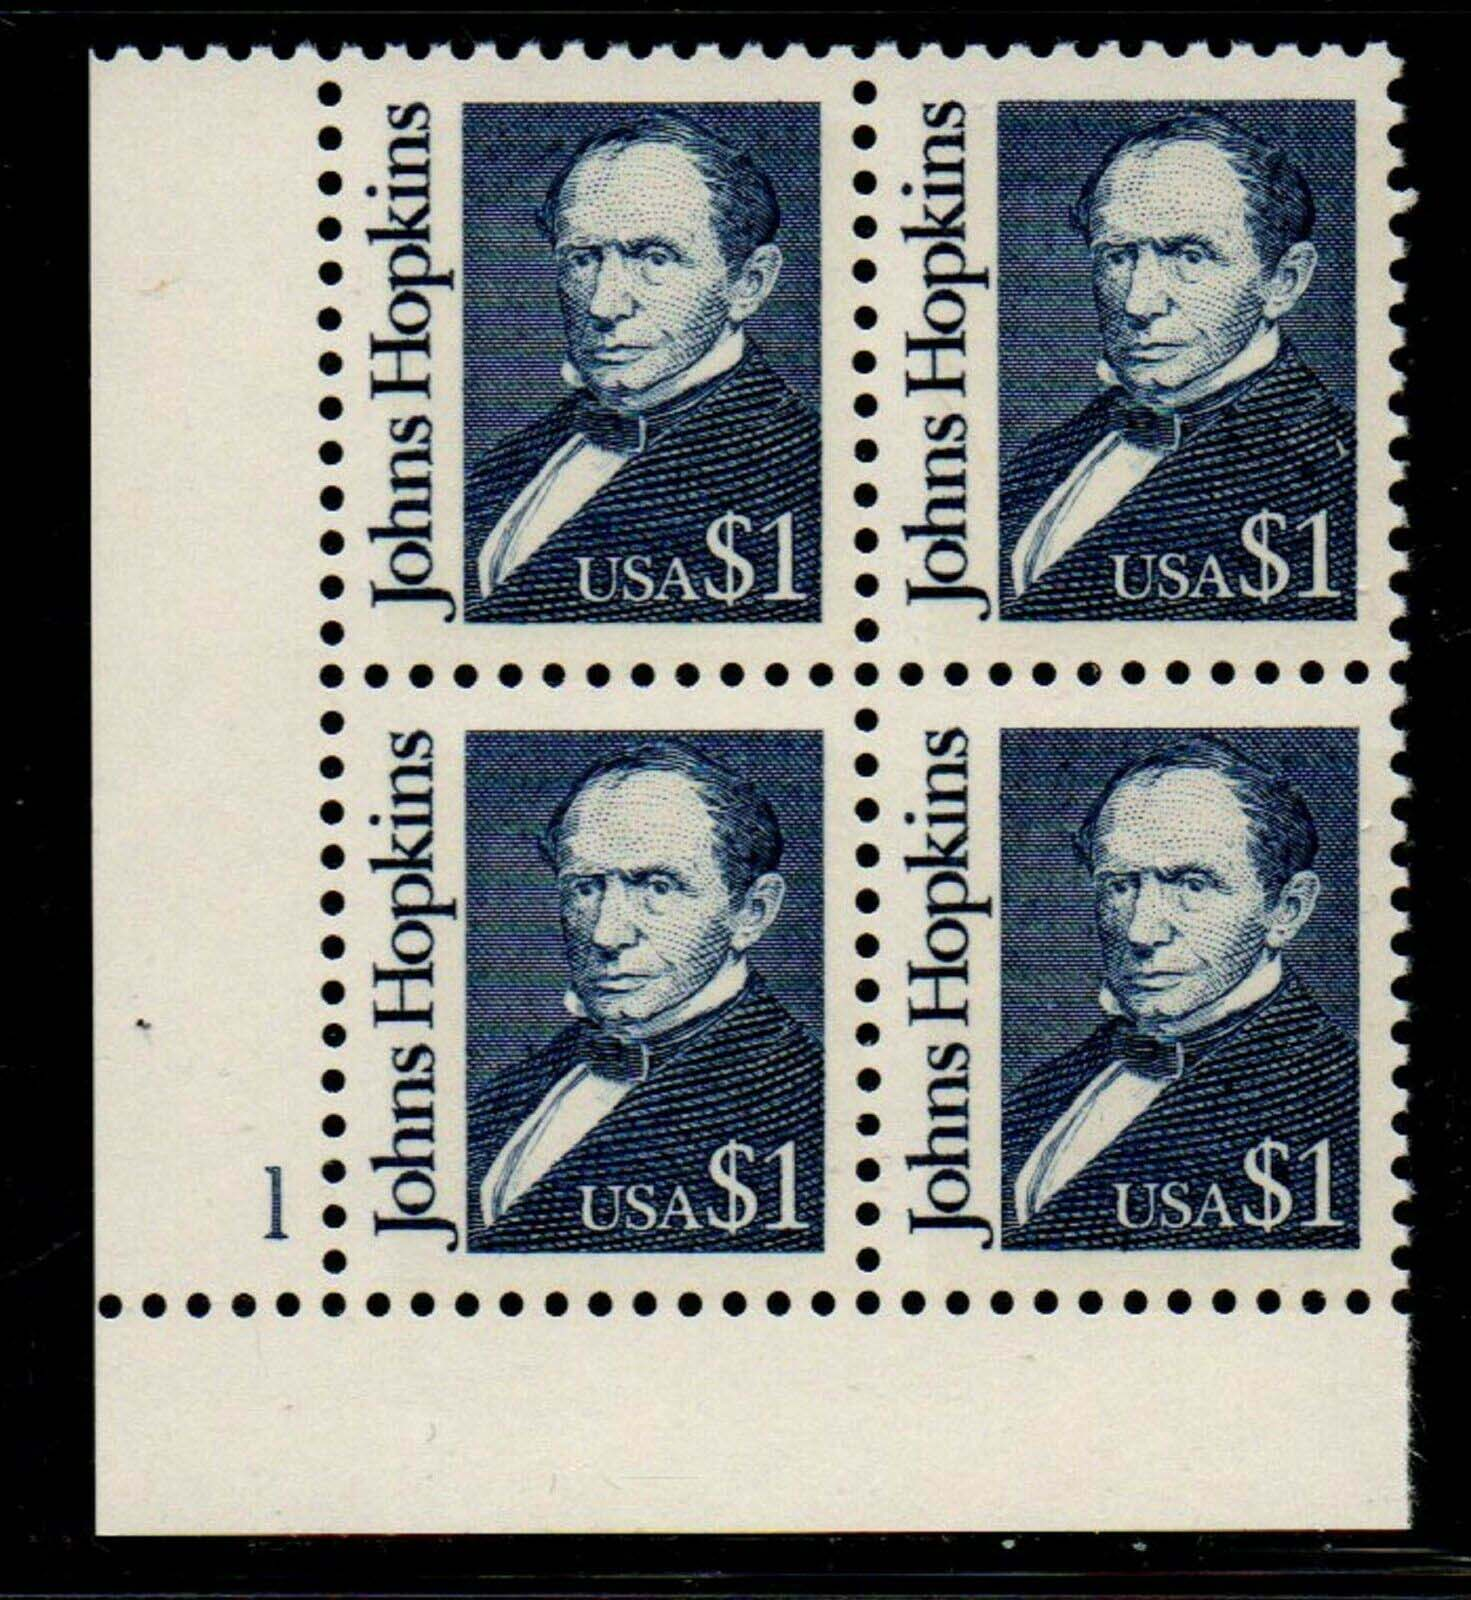 "Scott 2194 Plate Block ($ 1.00) <p> <a href=""/images/USA-Scott-2194-PB.jpg""><font color=green><b>View the image</a></b></font>"